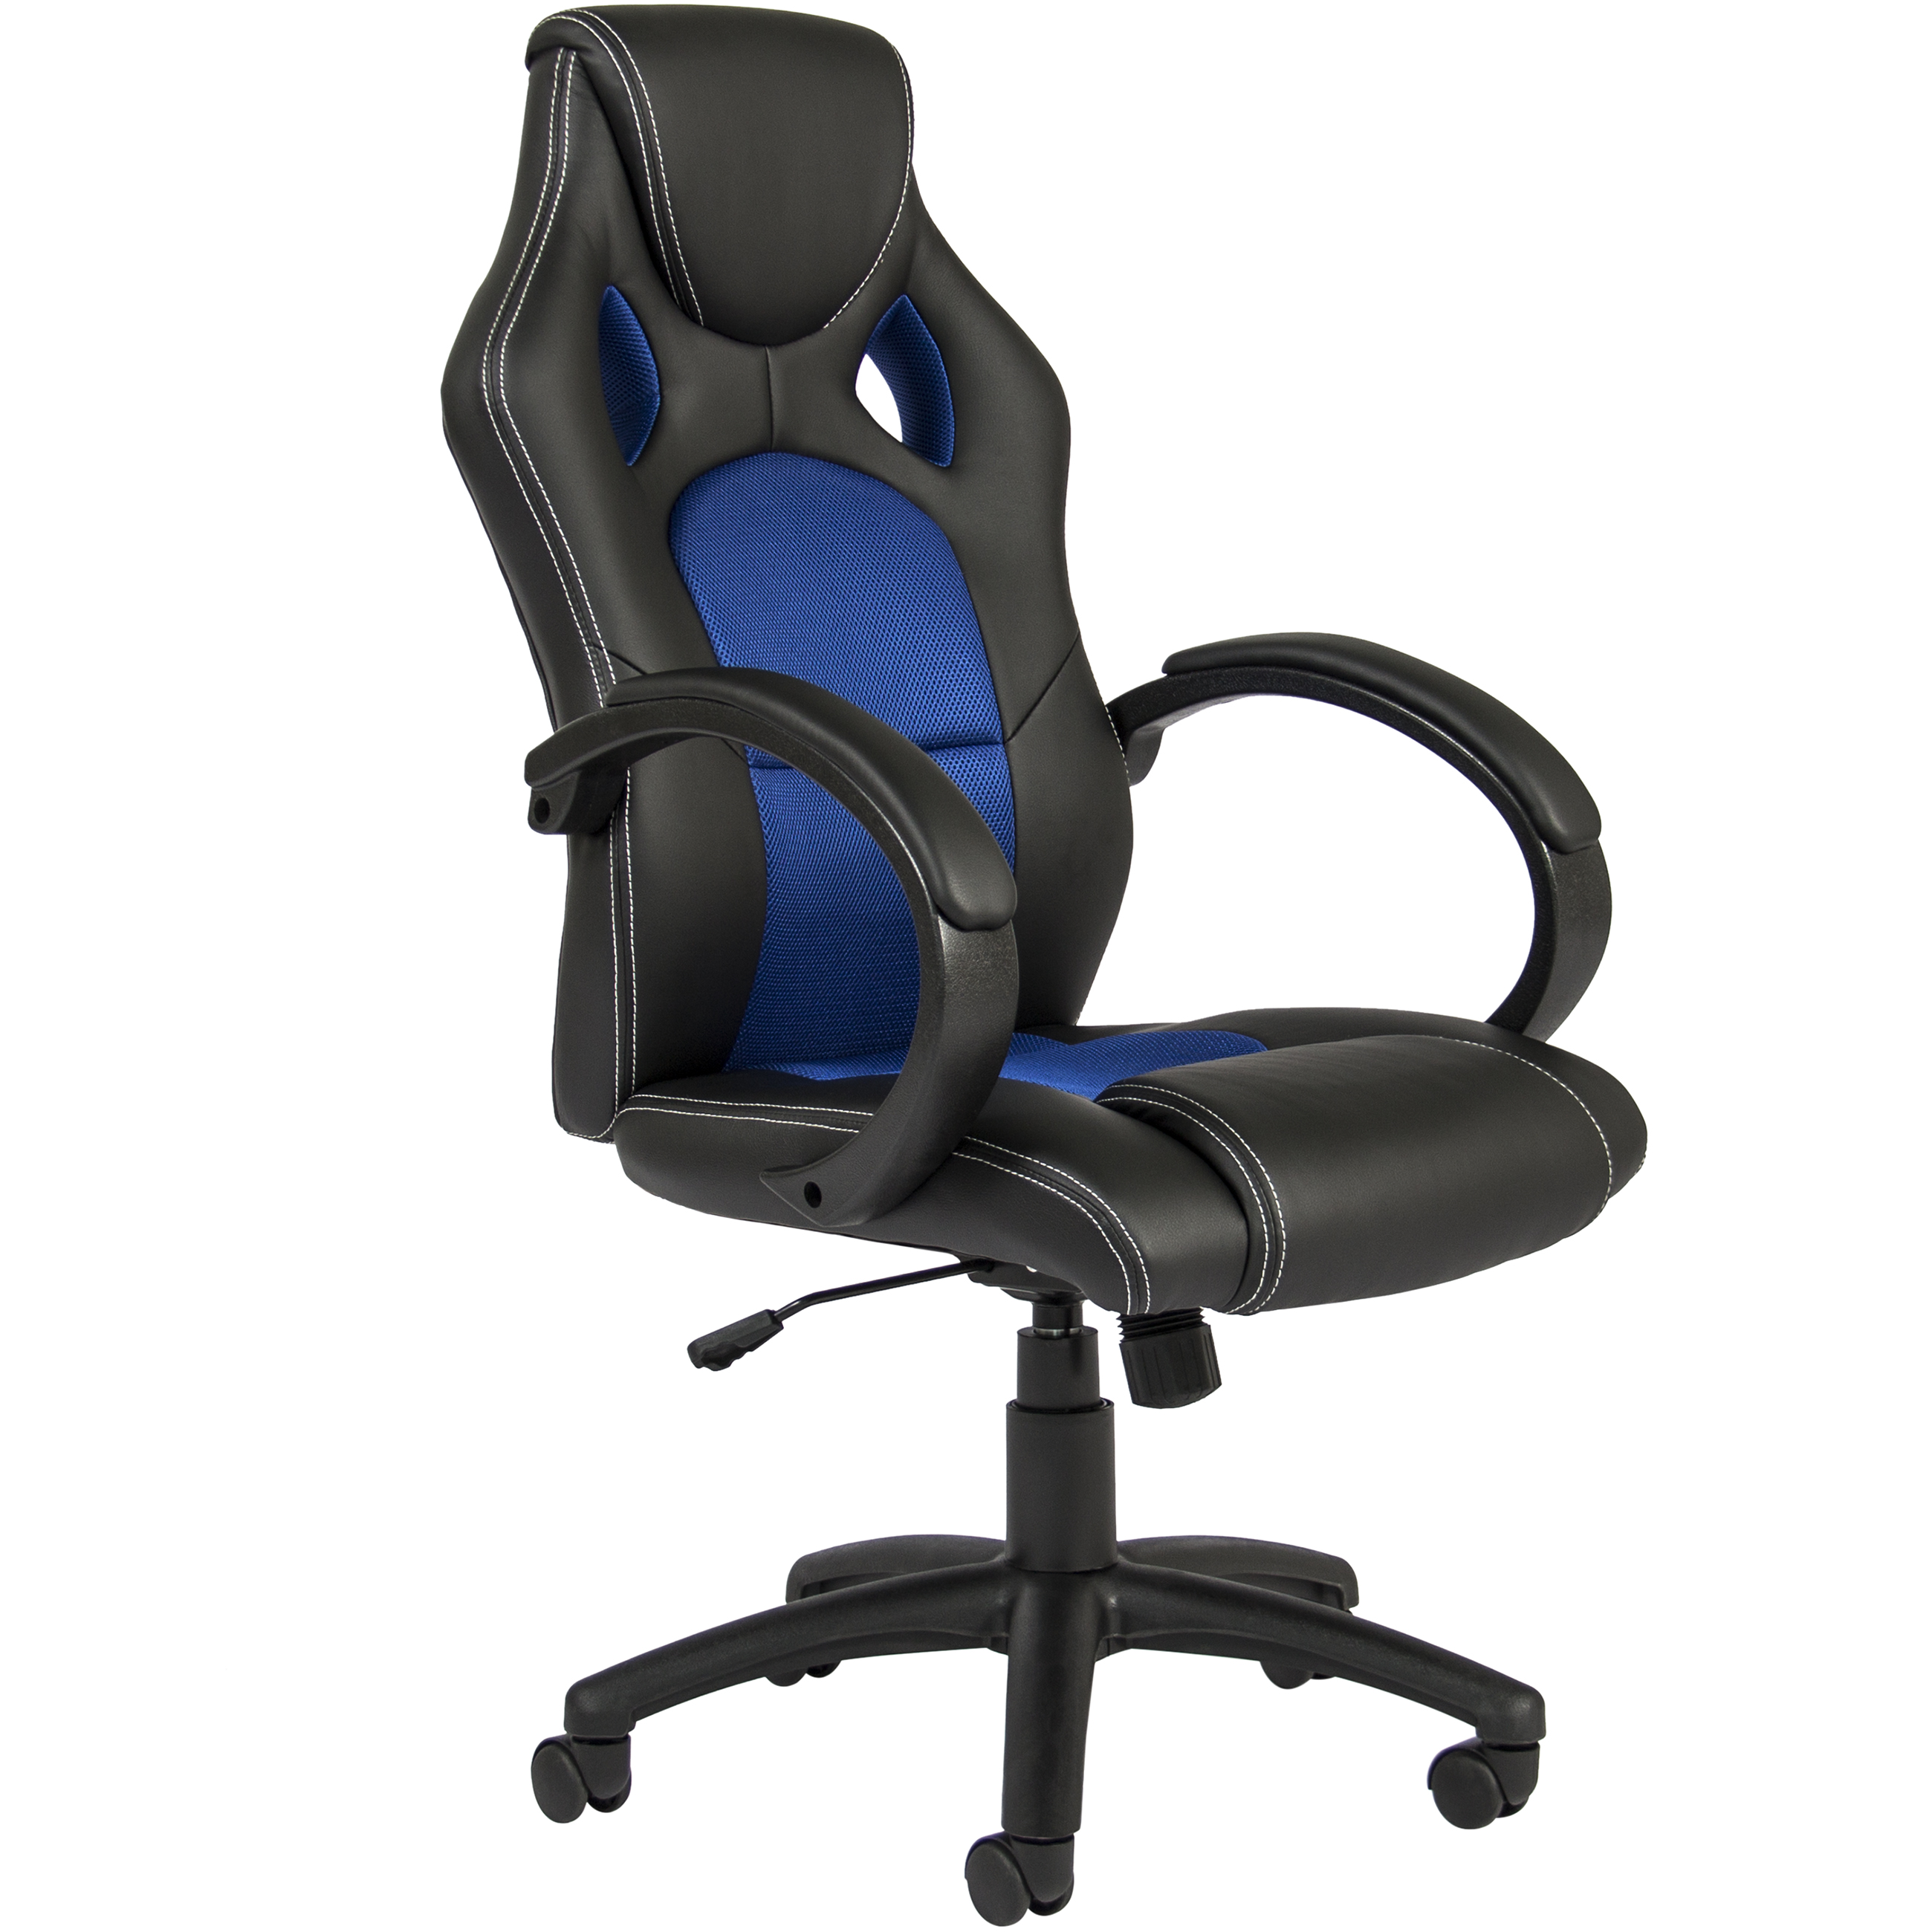 Executive Racing Gaming fice Chair PU Leather Swivel puter